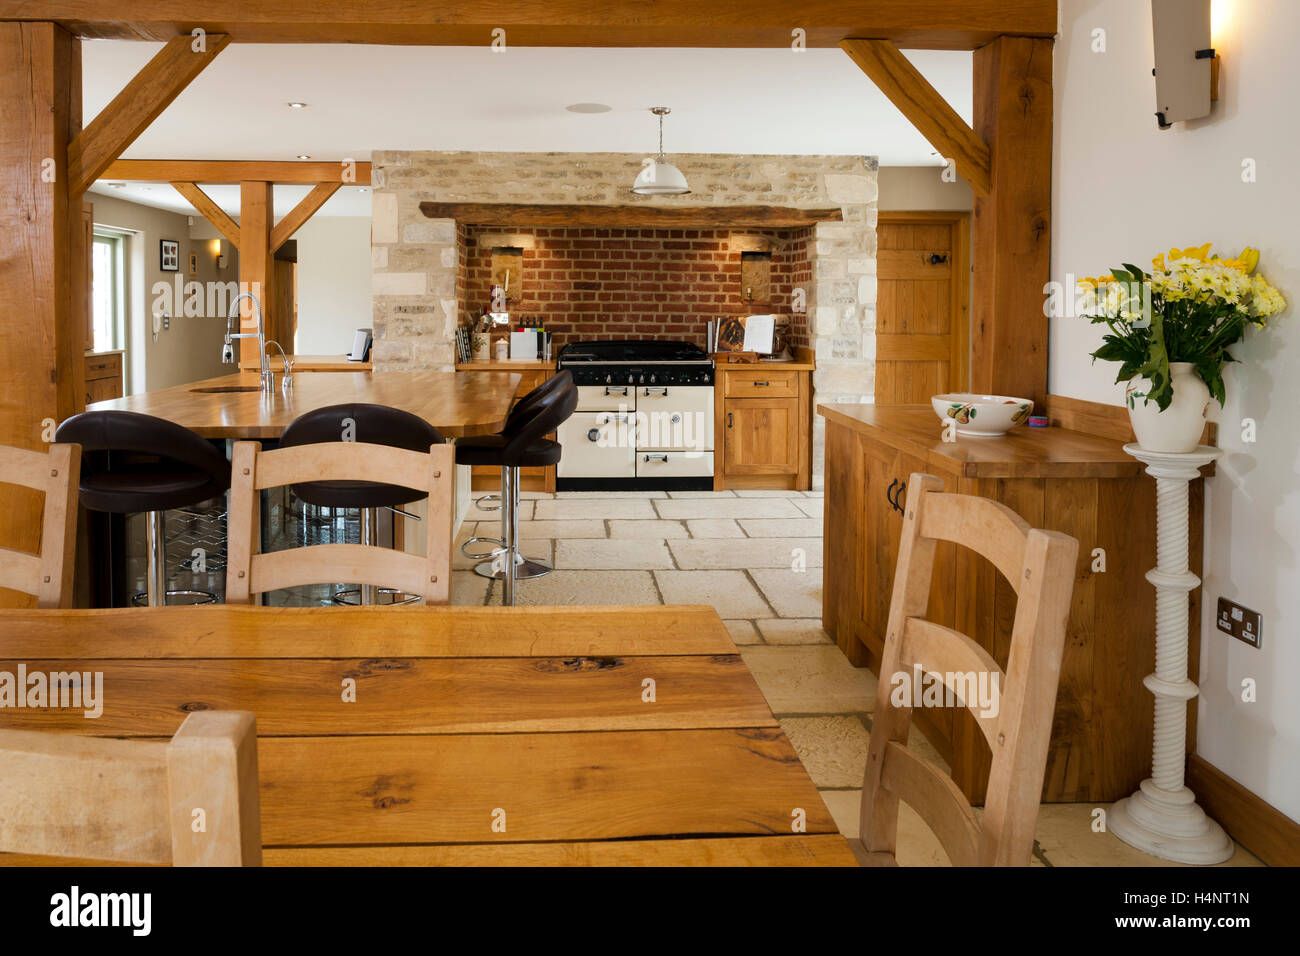 A luxury upmarket open plan barn conversion kitchen and dining area - Stock Image